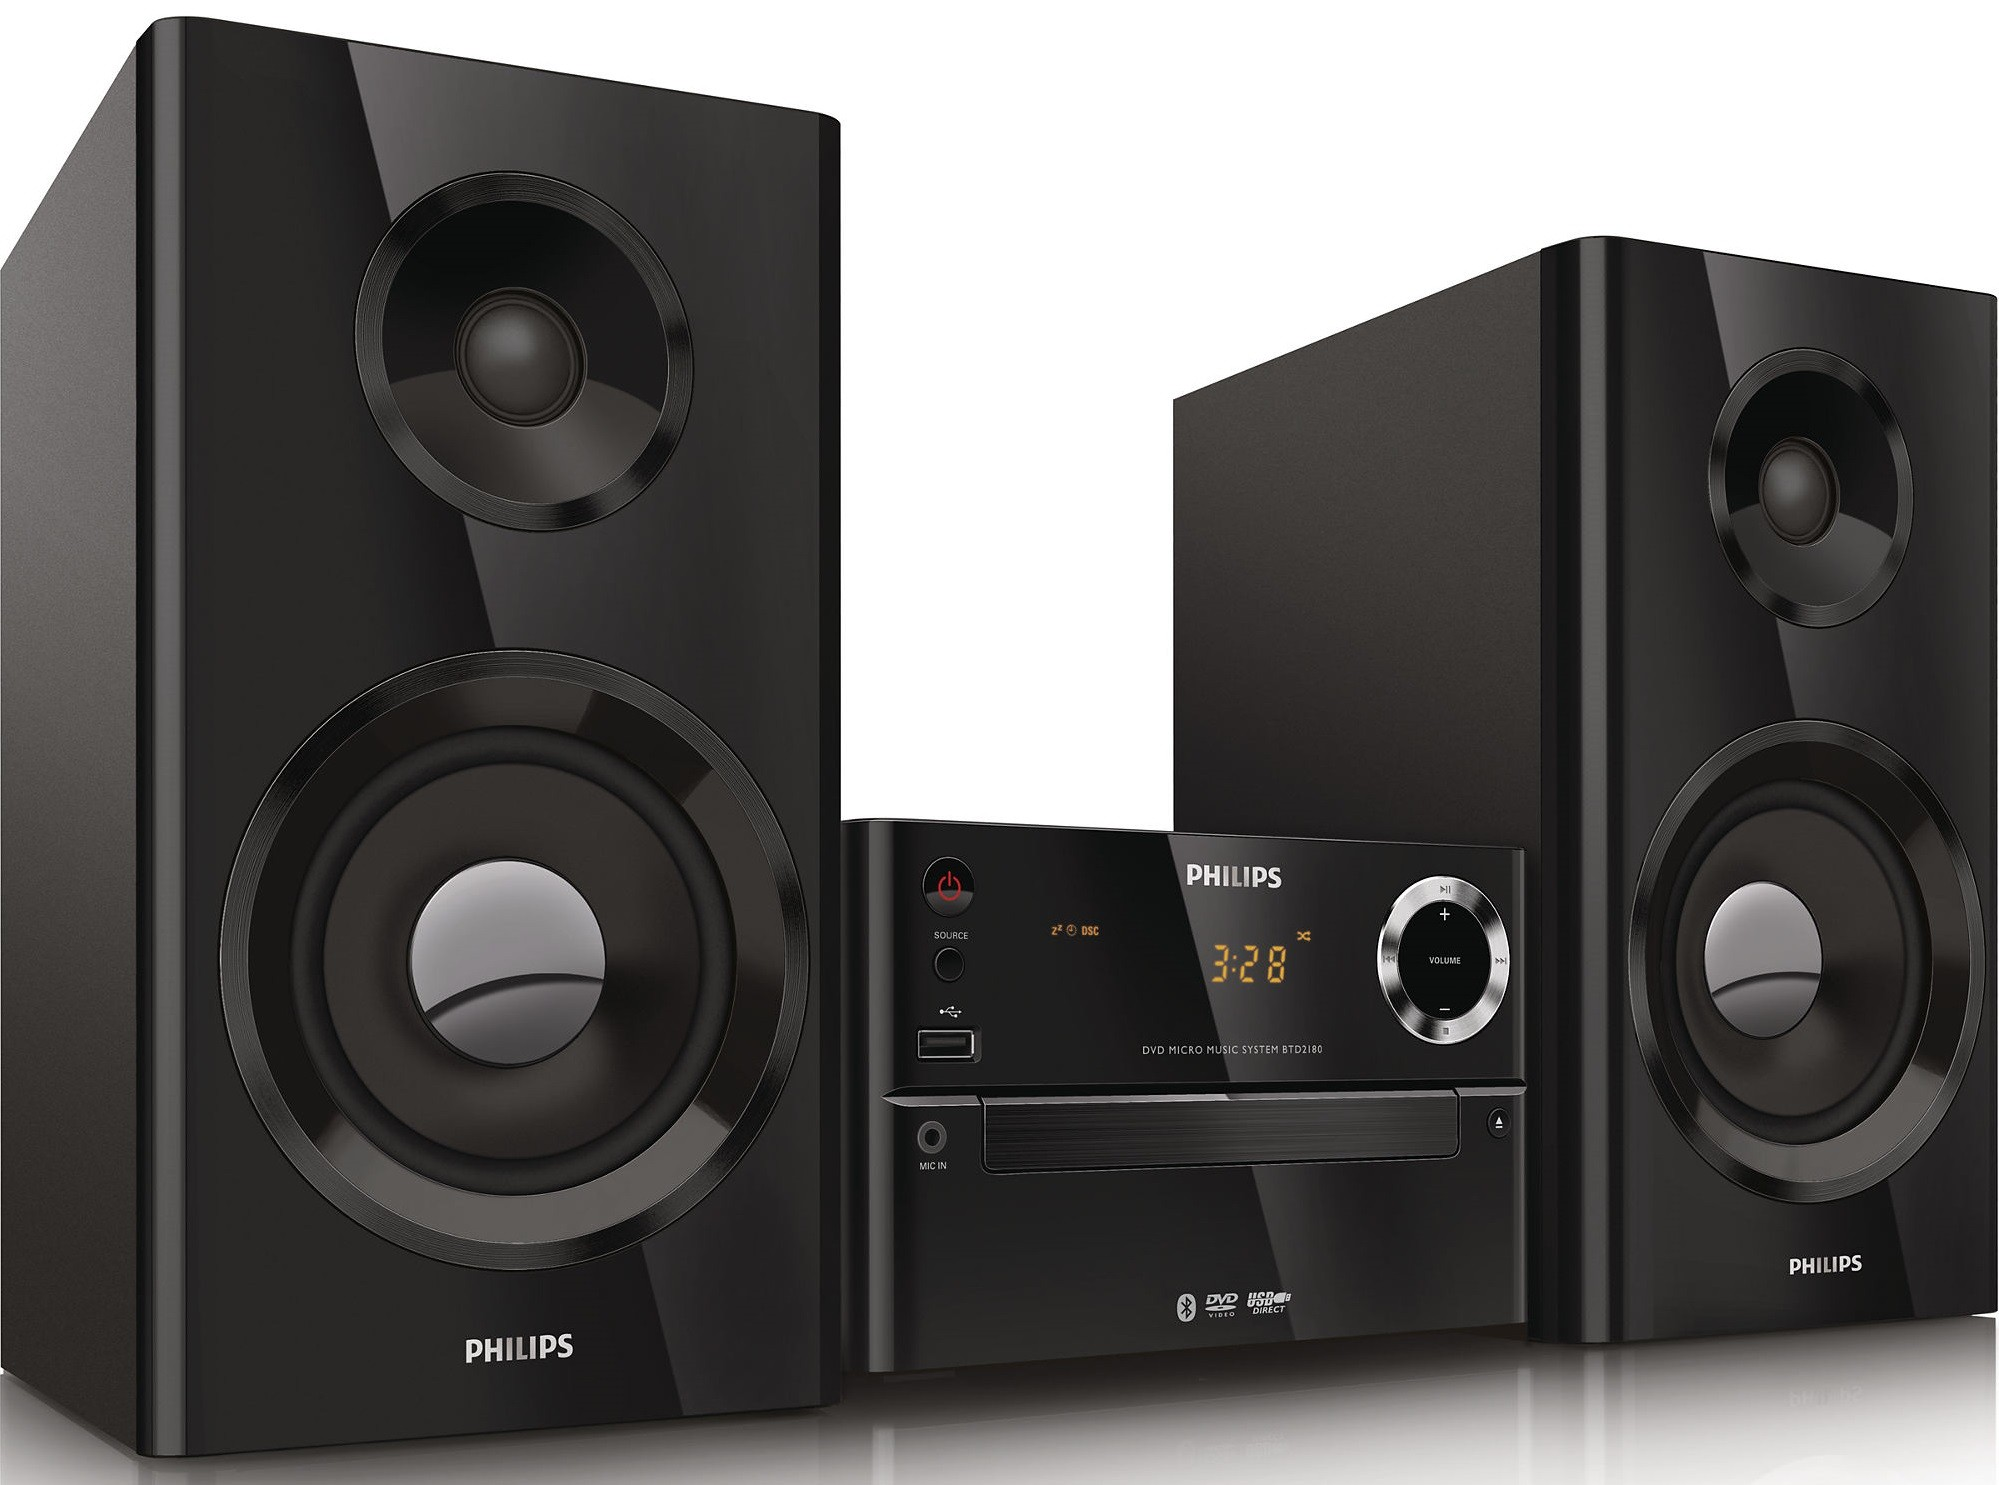 PHILIPS - BTD 2180/12